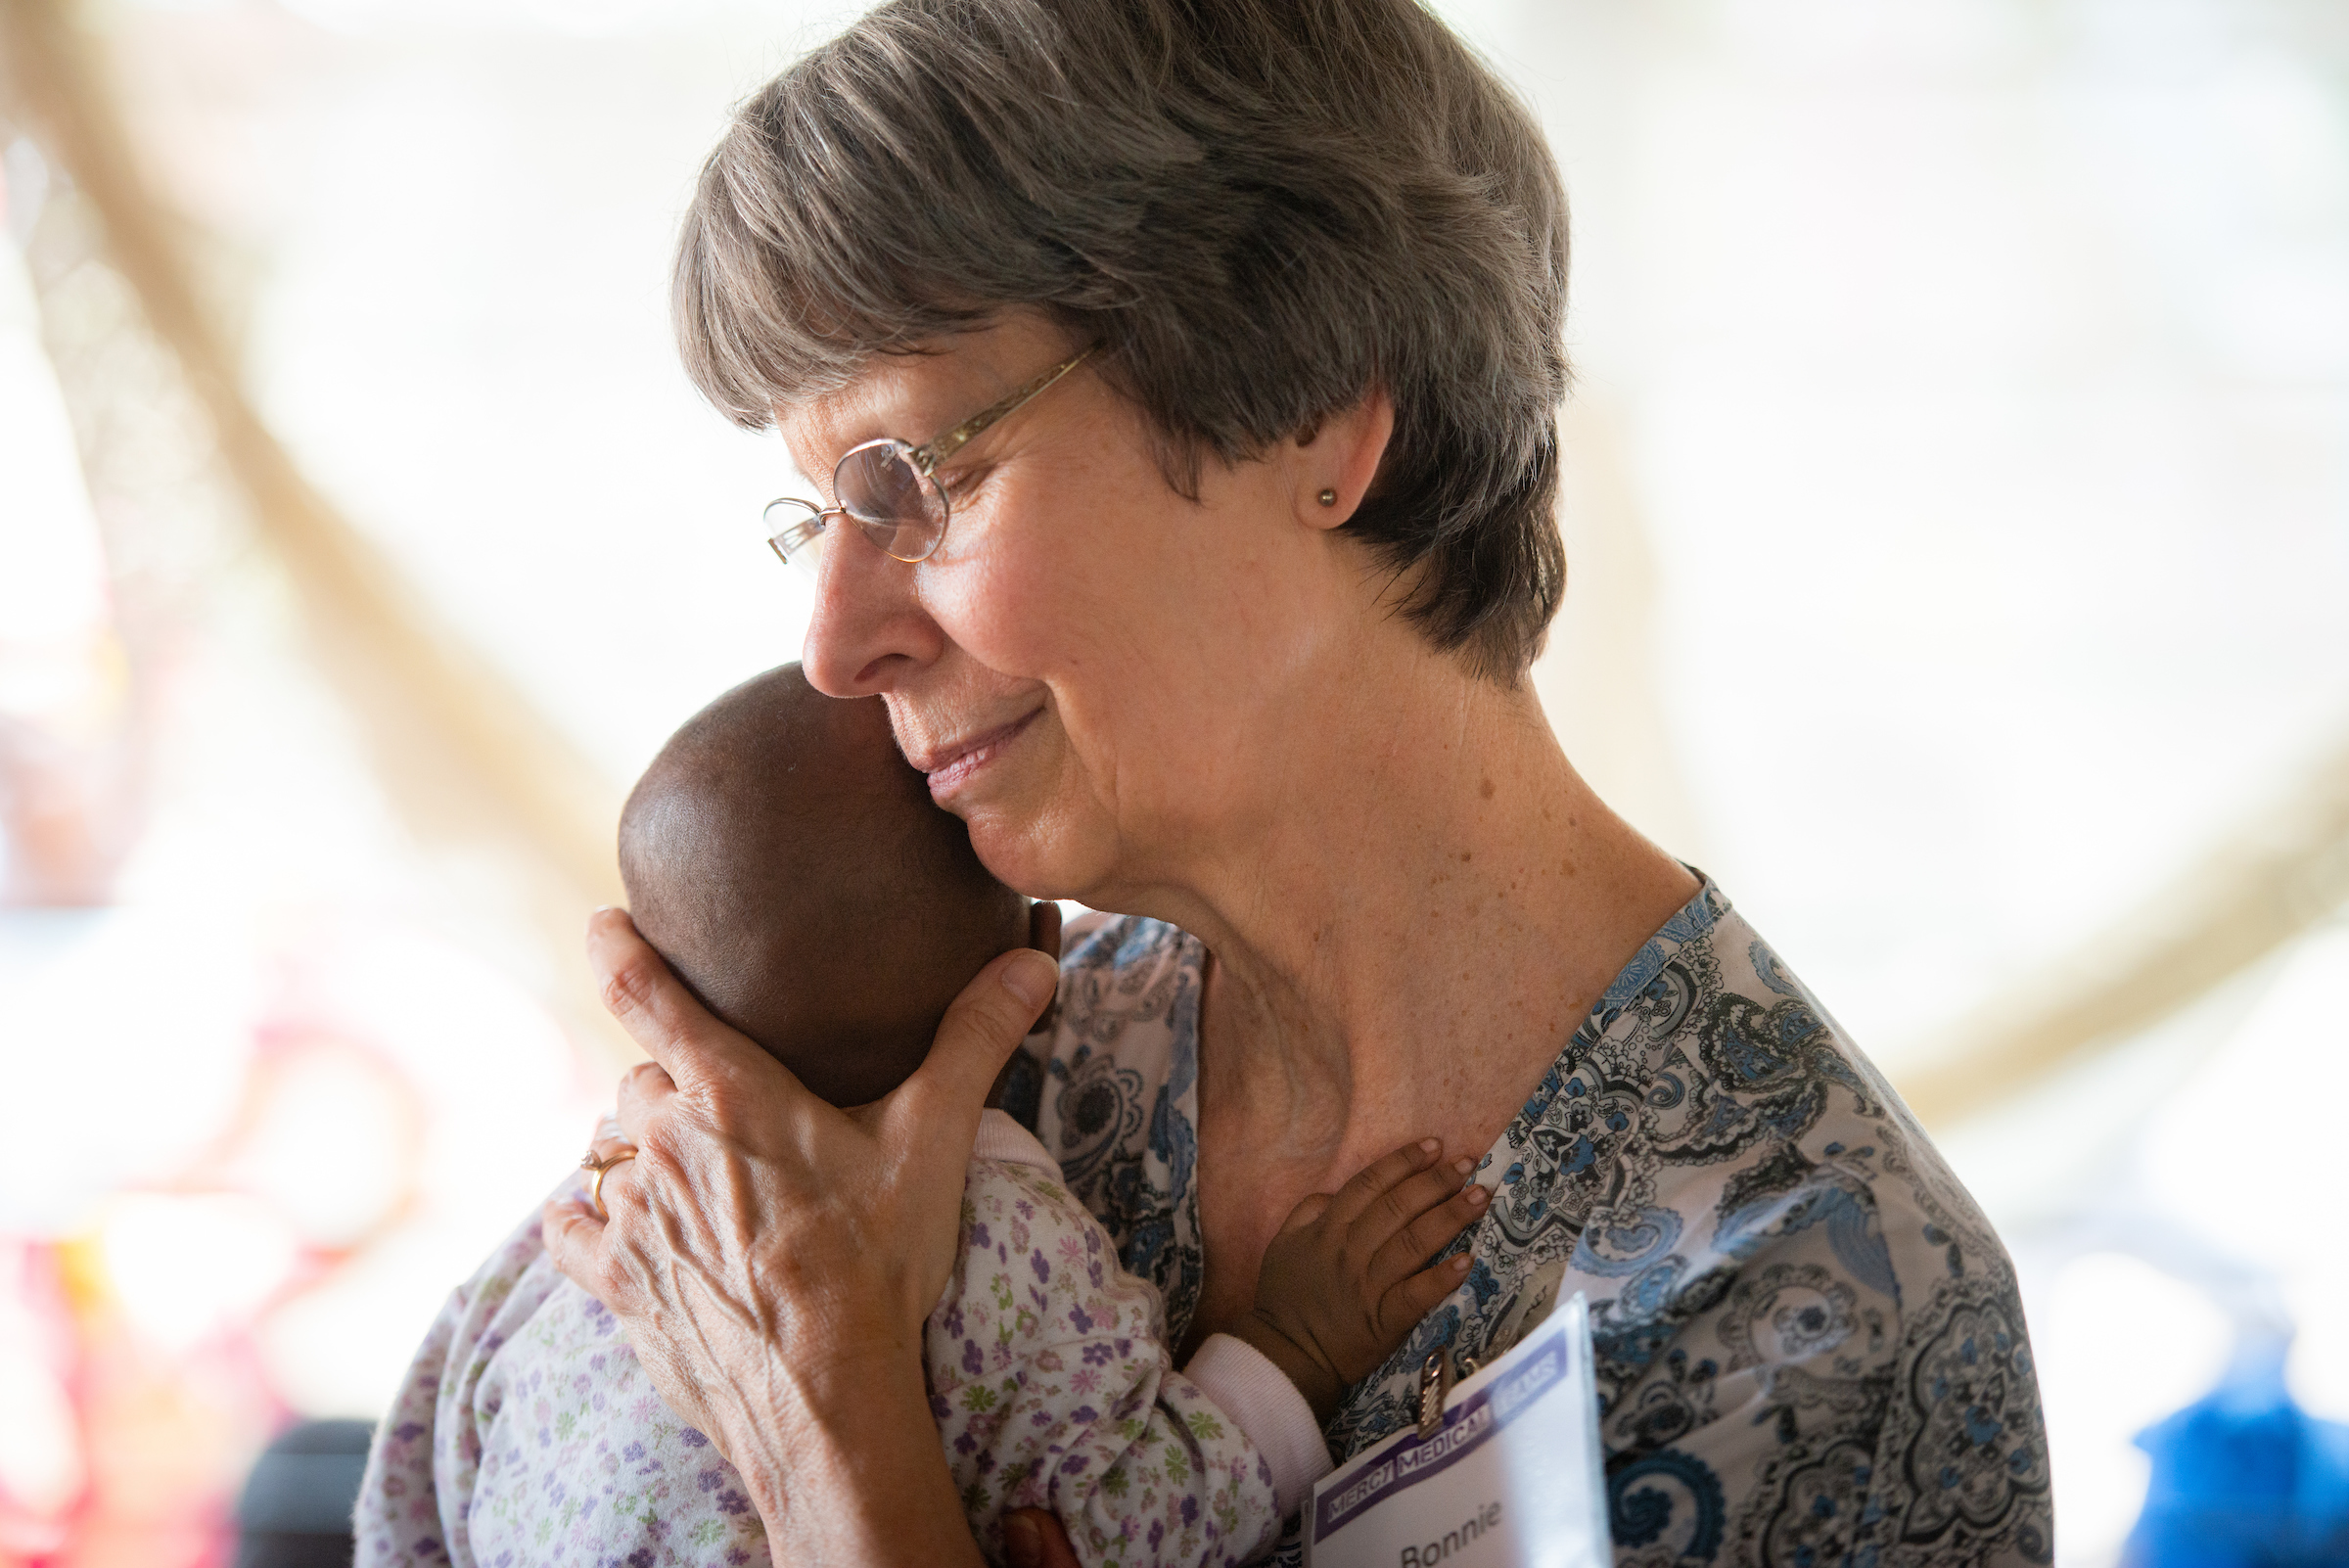 Bonnie Hartman, a member of Faith Lutheran Church, Godfrey, Ill., spends a few joyful moments holding an infant on the third day of the LCMS Mercy Medical Team on Wednesday, May 9, 2018, in the Yardu village outside Koidu, Sierra Leone, West Africa. LCMS Communications/Erik M. Lunsford